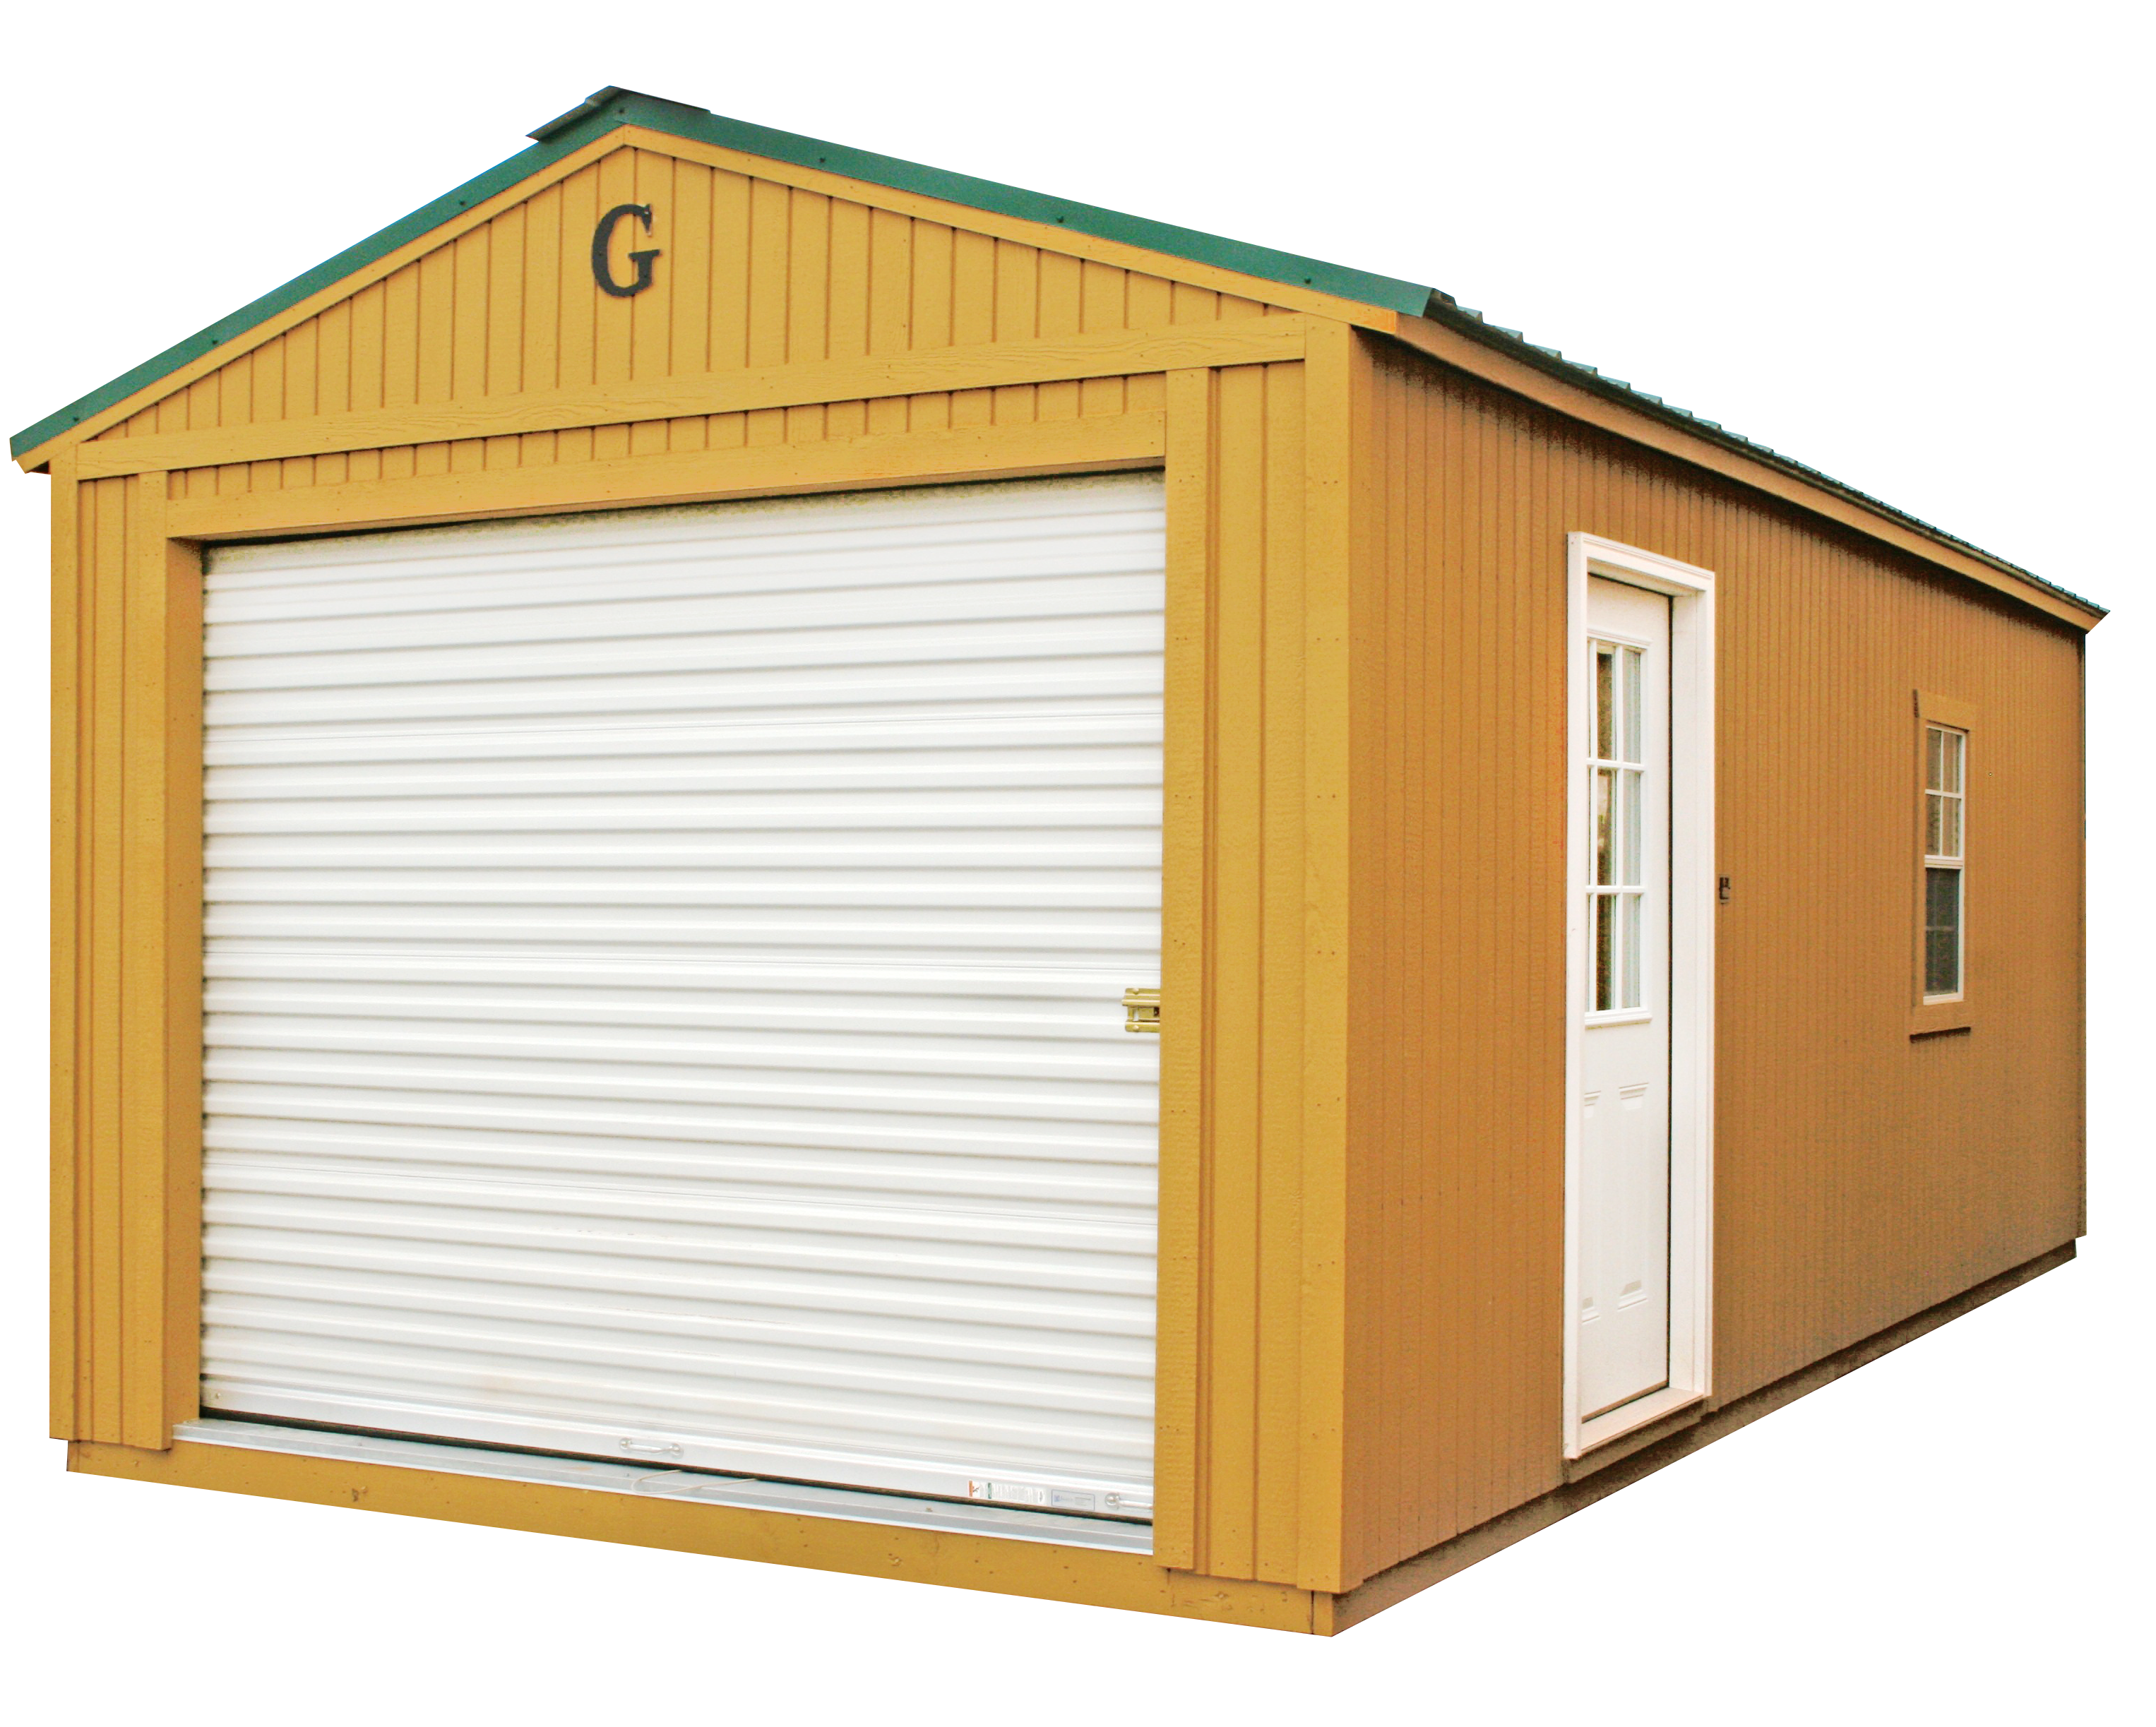 Temporary Garage 12x24 : Portable garage buildings alberta